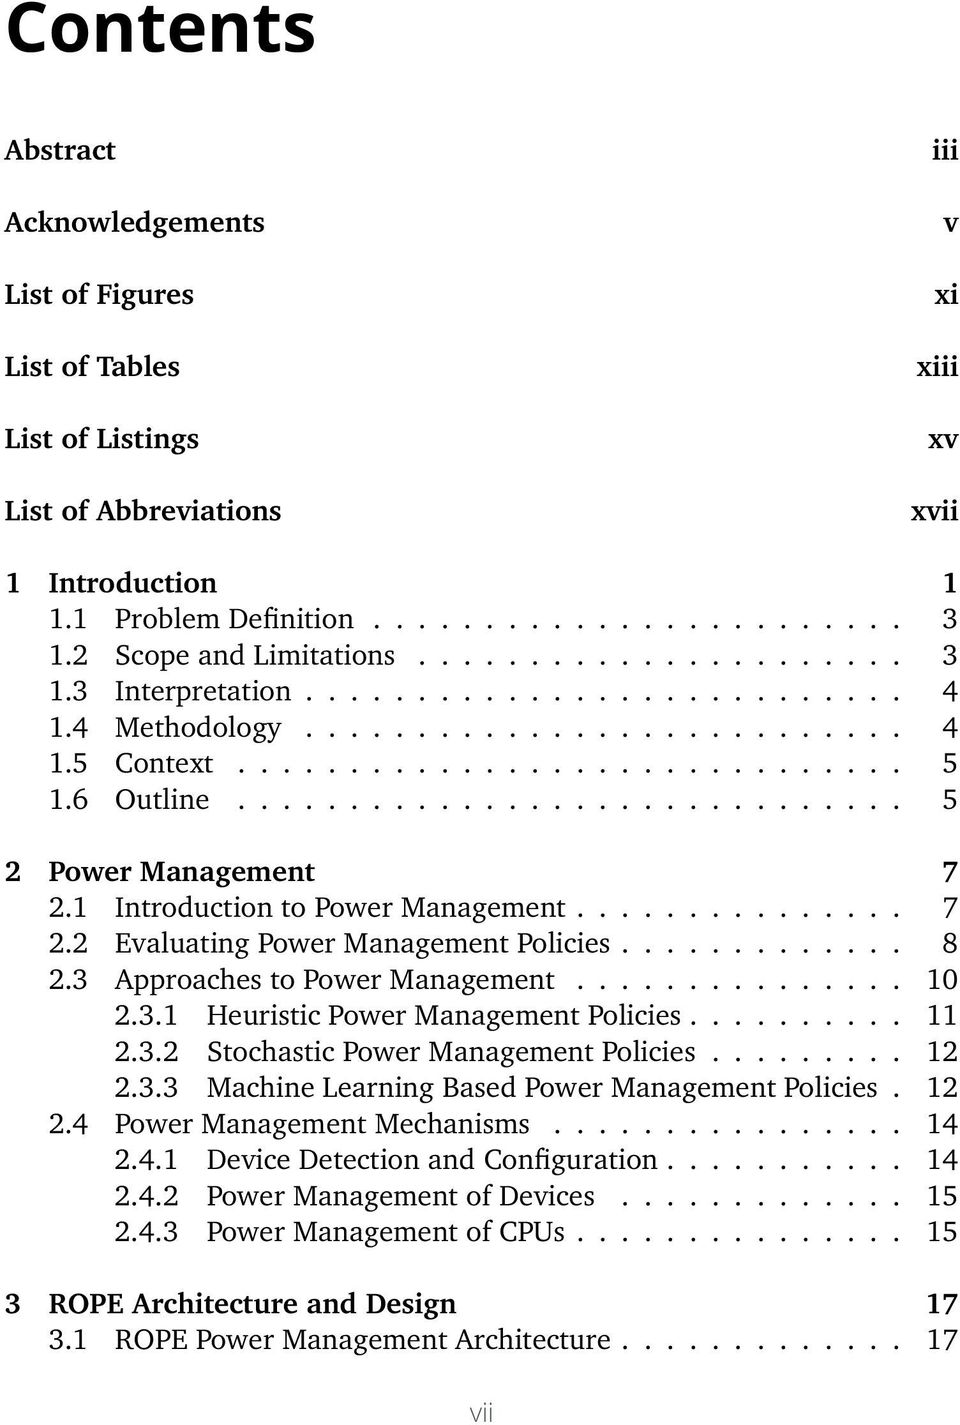 ............................. 5 2 Power Management 7 2.1 Introduction to Power Management............... 7 2.2 Evaluating Power Management Policies............. 8 2.3 Approaches to Power Management.